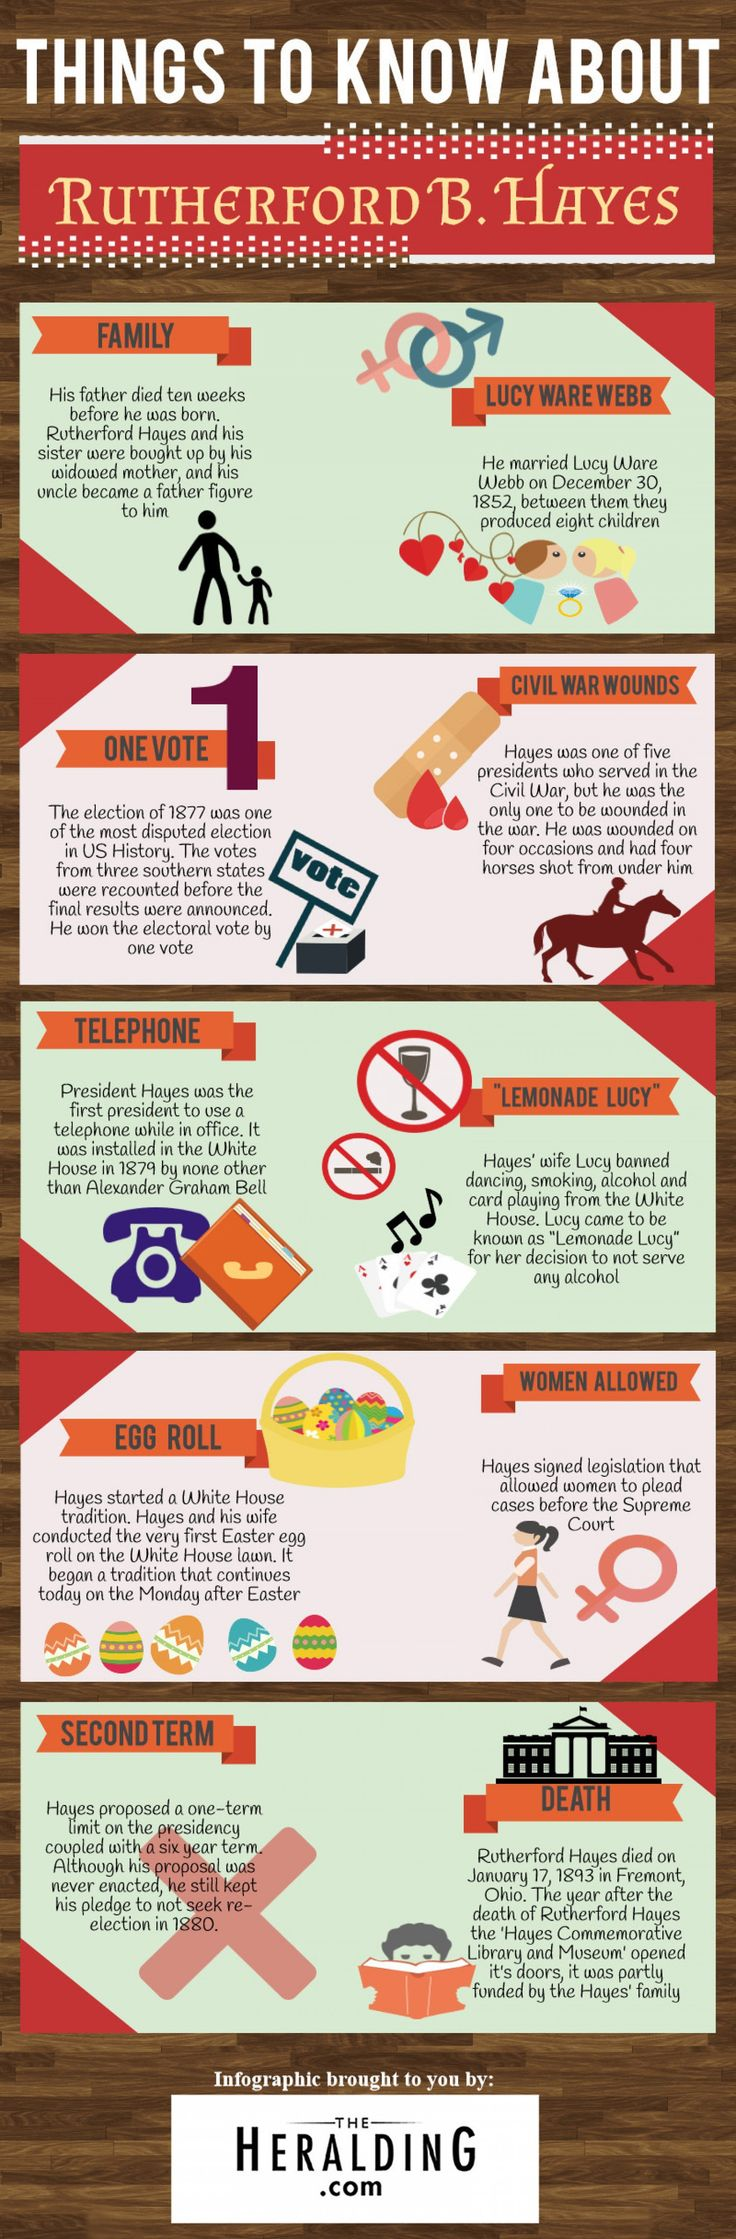 best ideas about rutherford b hayes presidents rutherford b hayes 19th president of the united states 1877 1881 infographic